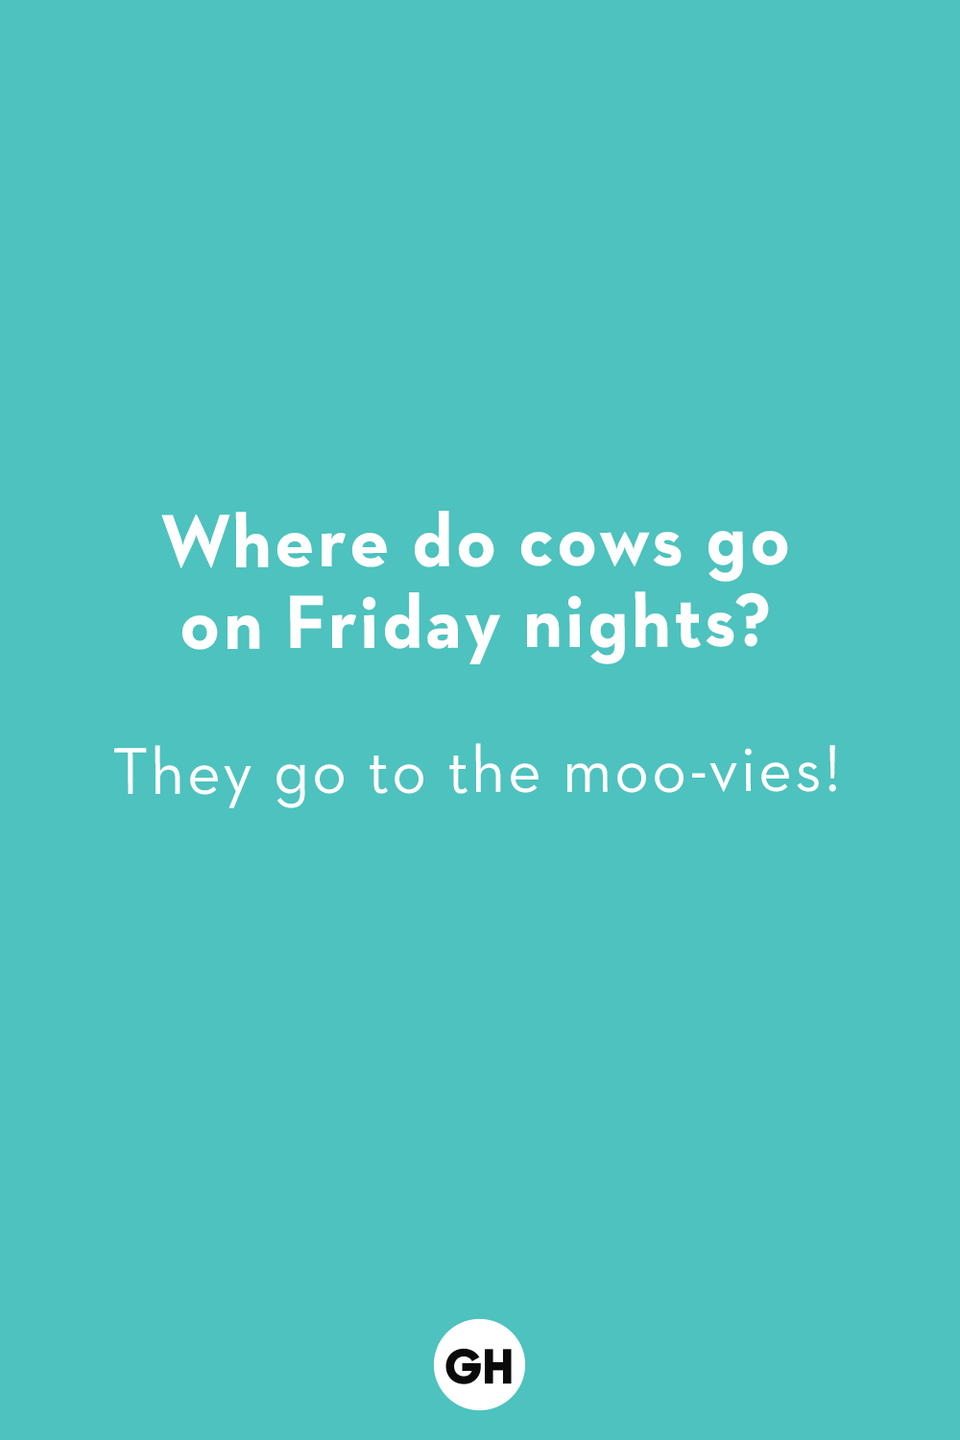 <p>They go to the moo-vies!</p>